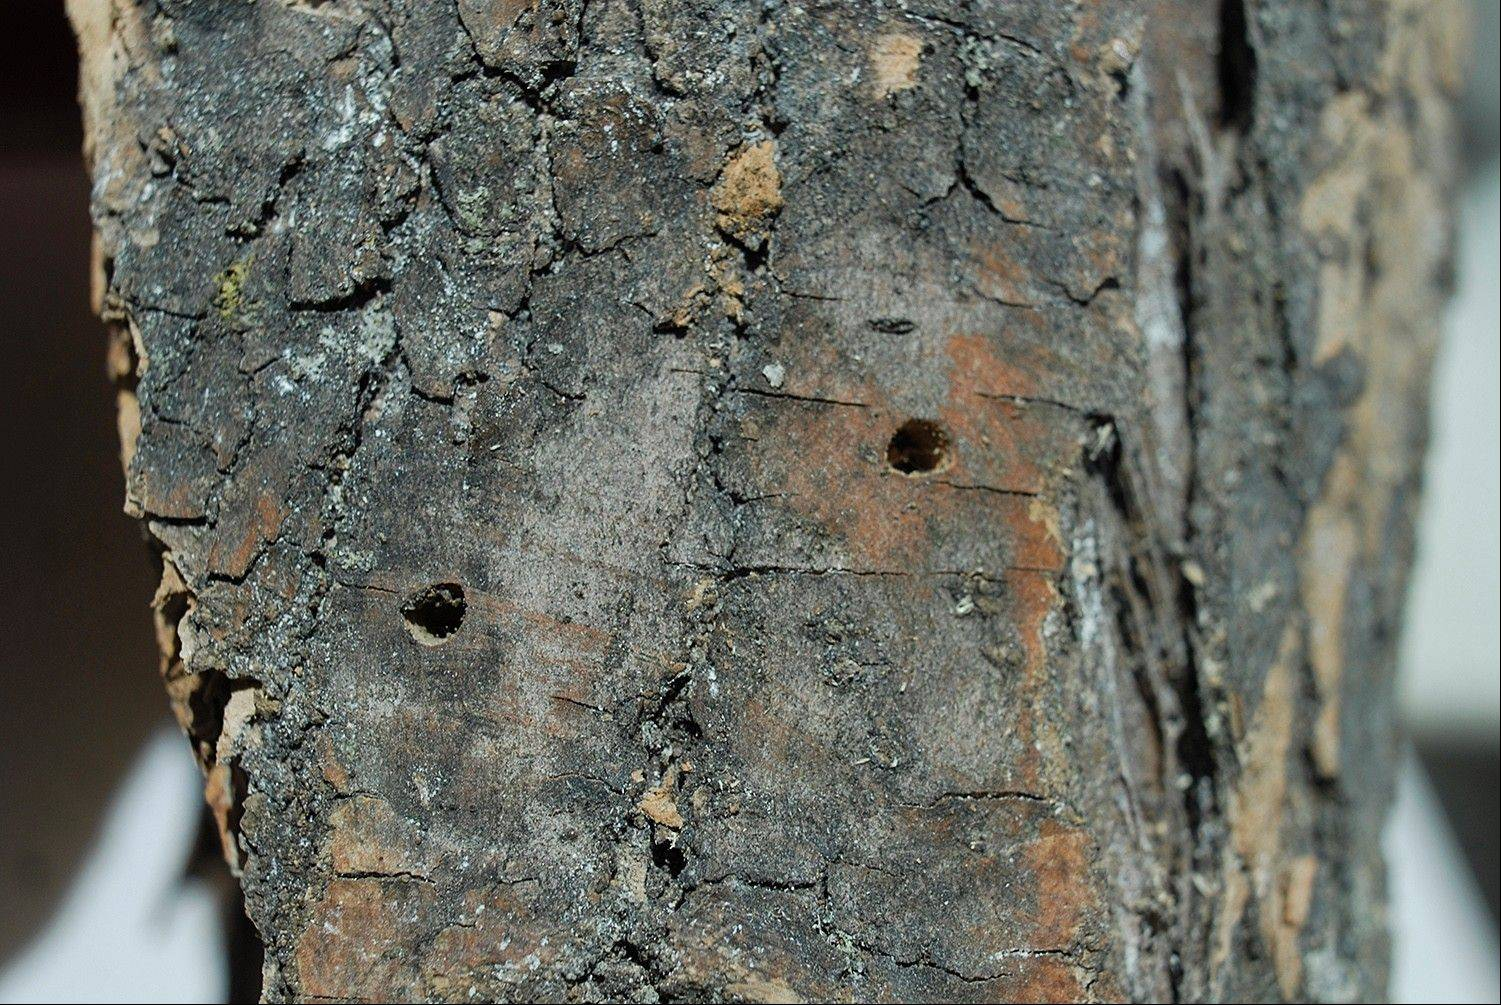 Keep emerald ash borer infestation in check by not transporting wood out of the quarantine zone. Pictured are exit wounds made by the emerald ash borer.